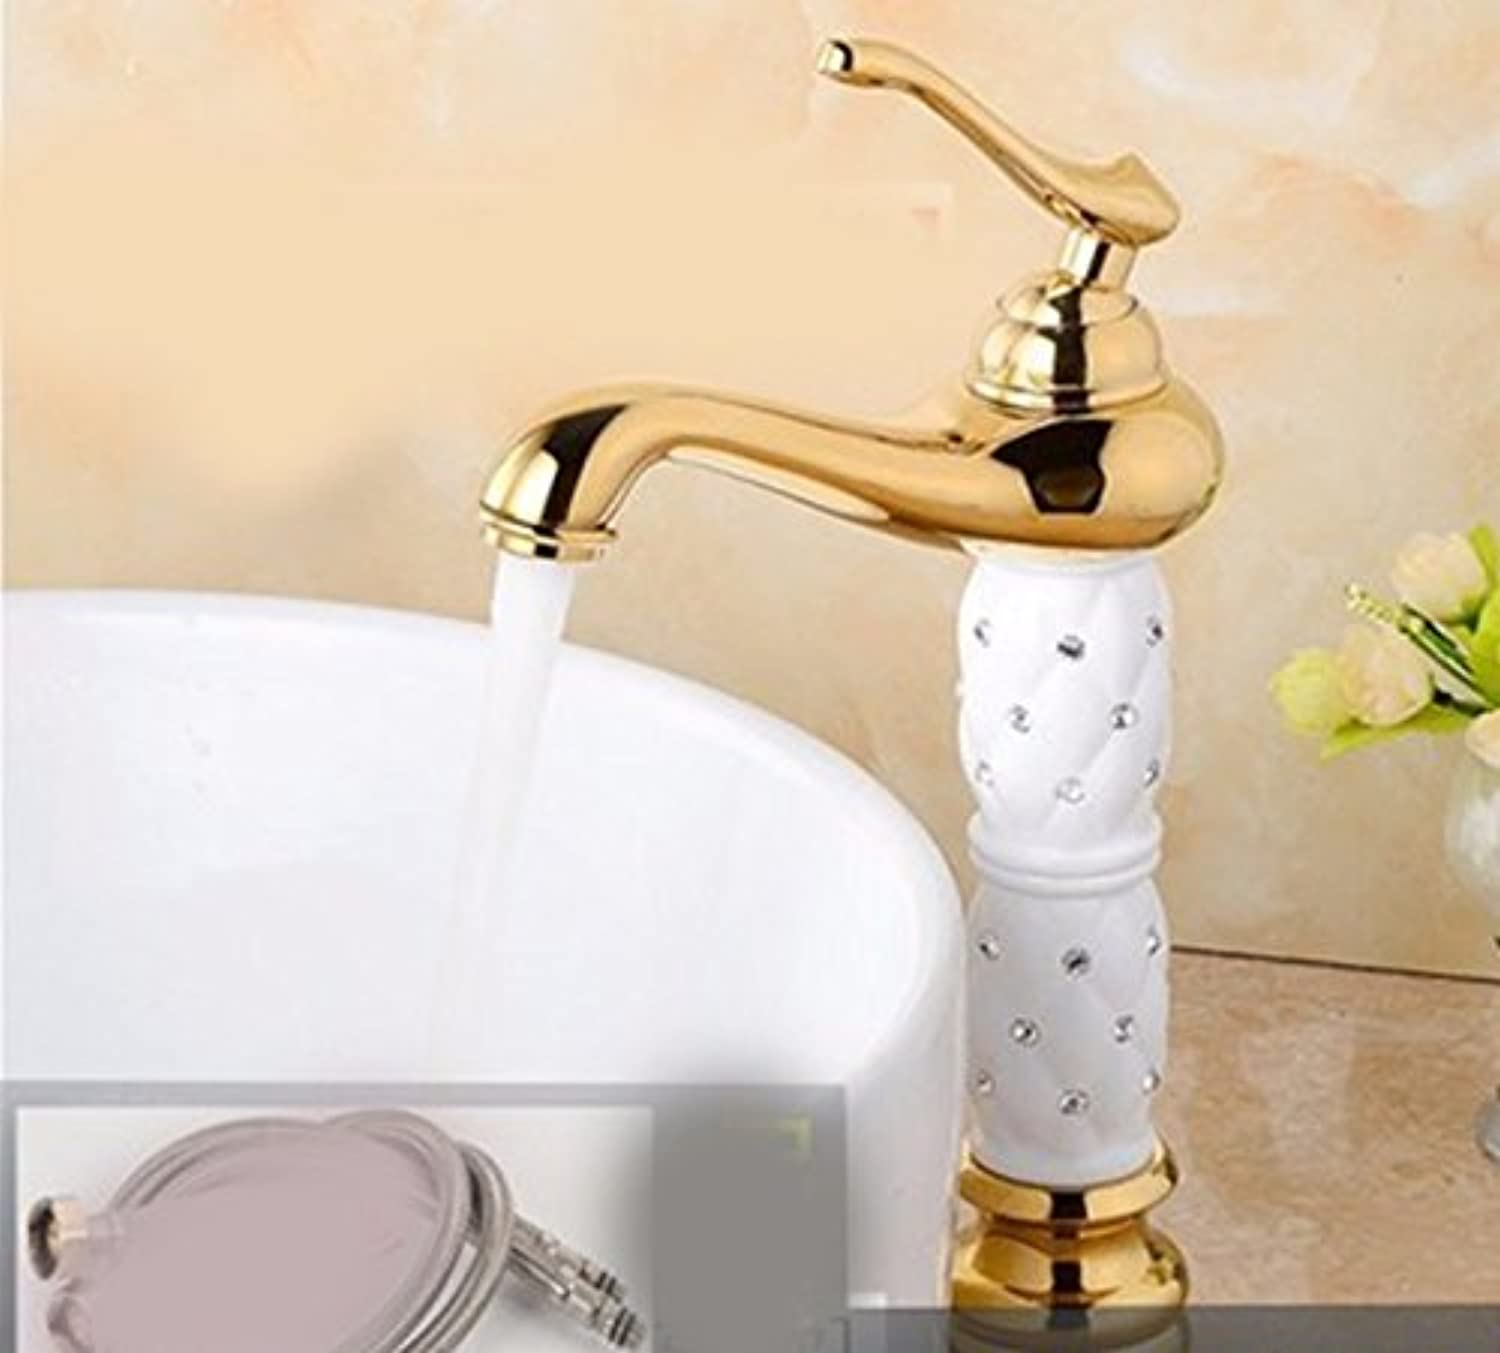 Hlluya Professional Sink Mixer Tap Kitchen Faucet Copper, plus high, hot and cold wash basins and Sinks Faucets, 8